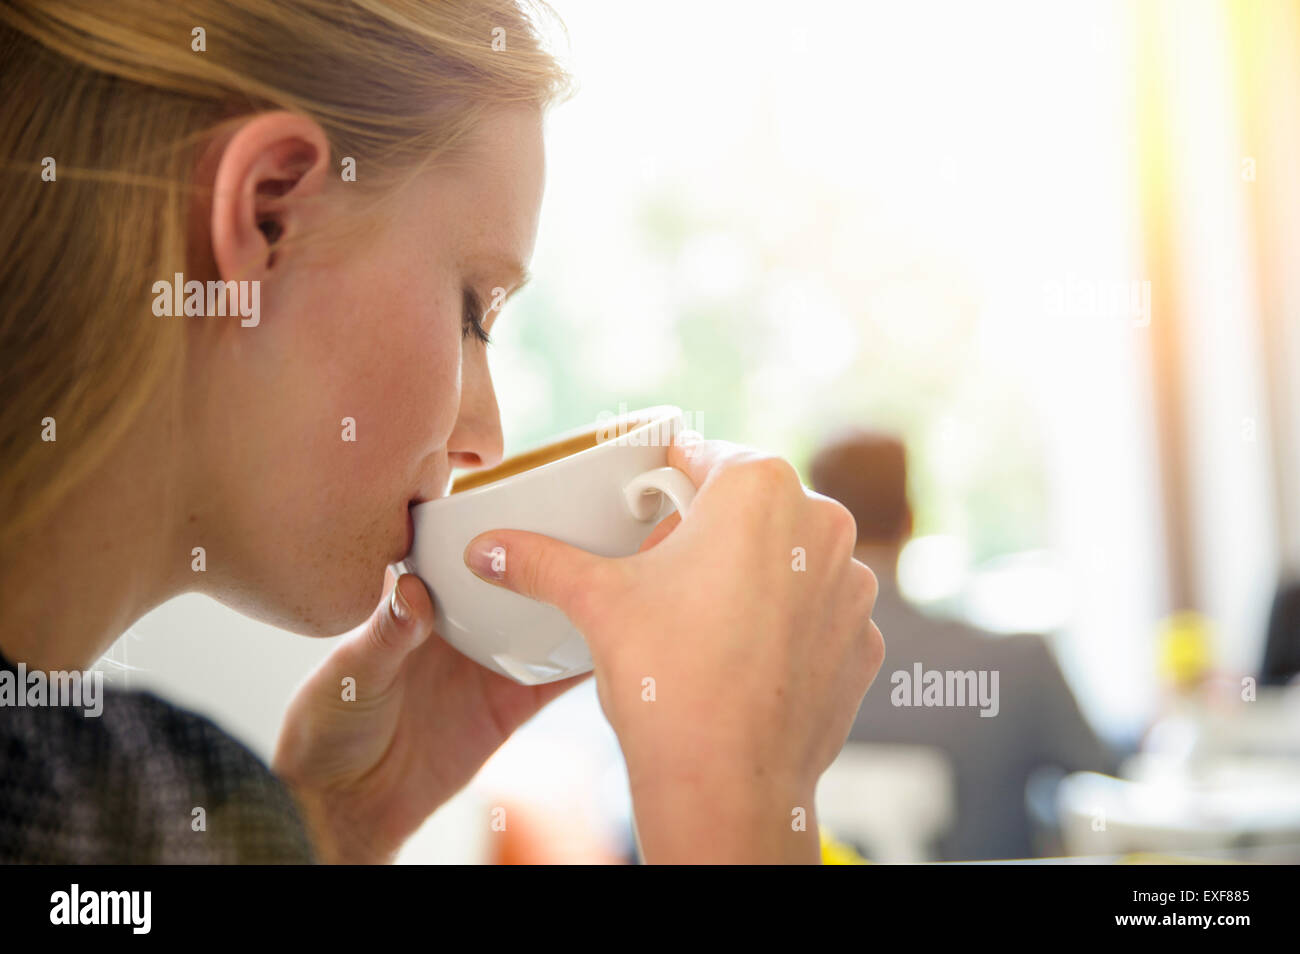 Young woman drinking coffee in cafe, close-up - Stock Image